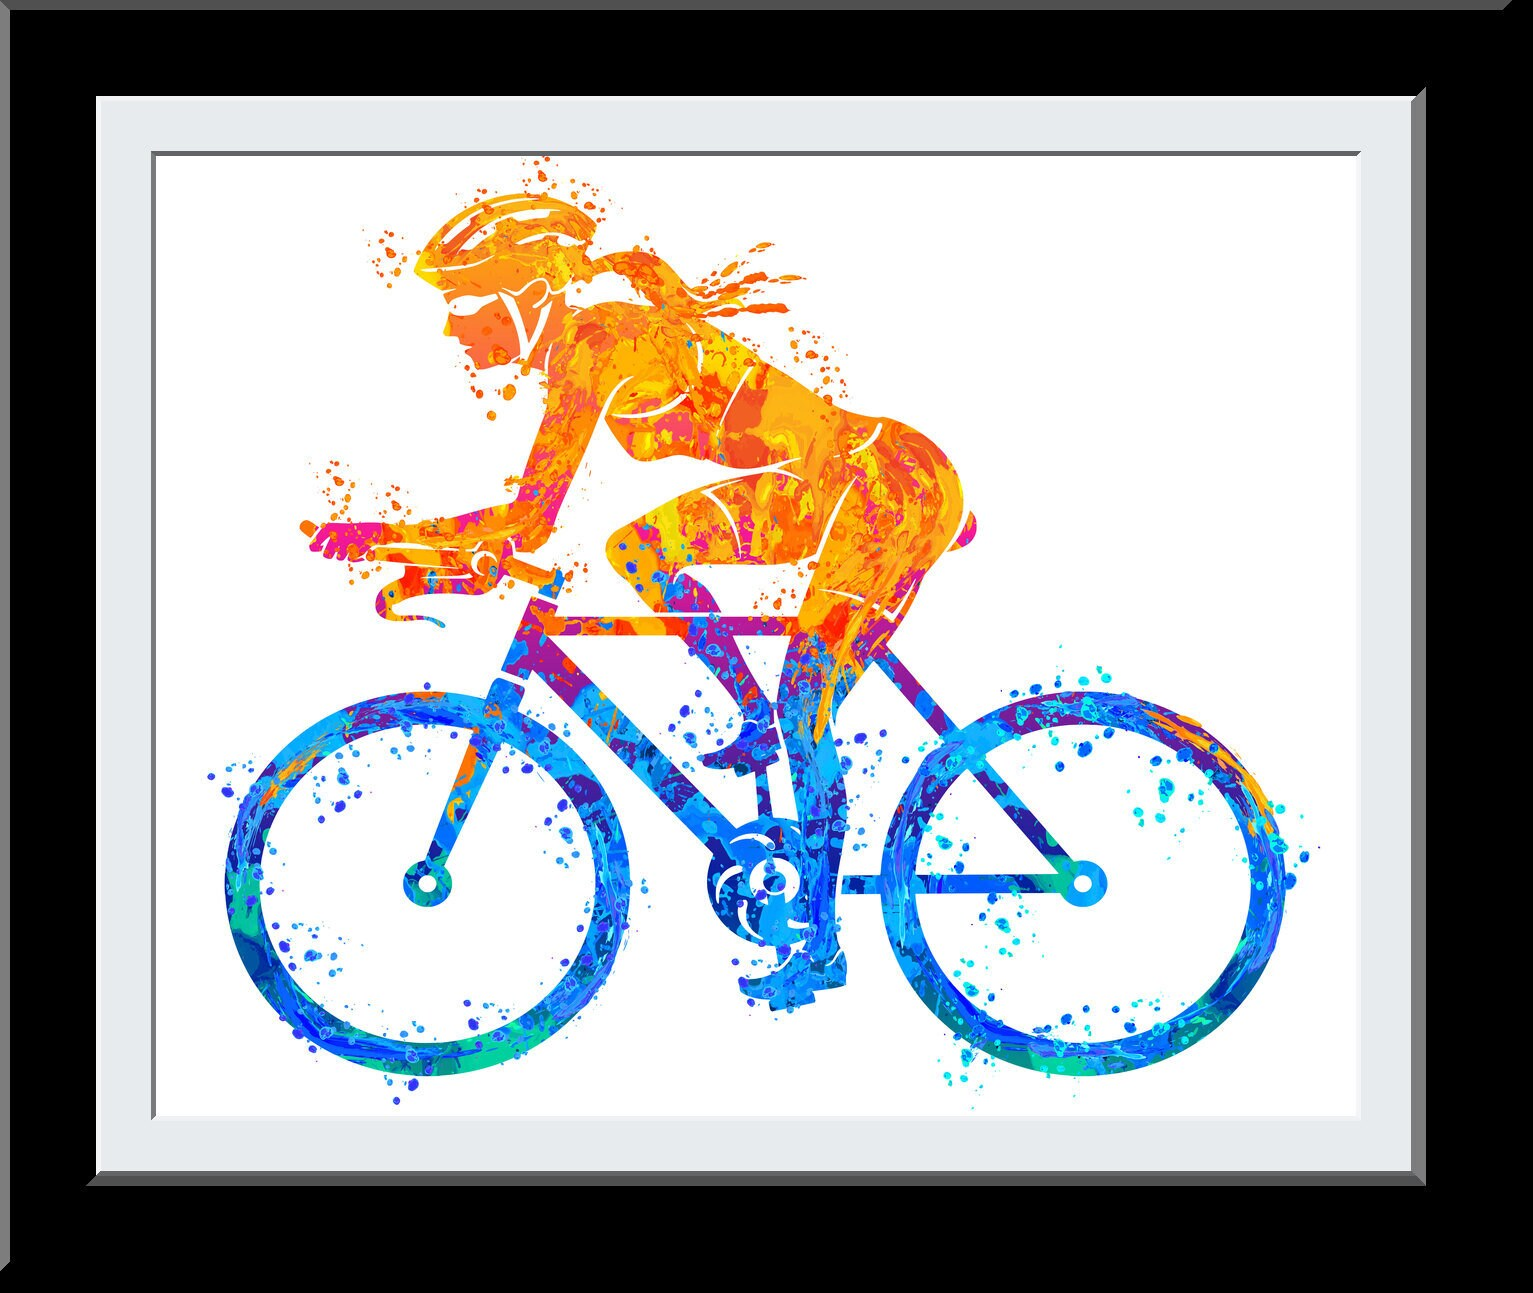 Cyclist Gift for Her - Female Bicycle Riding WaterColor Print -Gift for Girls- Fire+Water Elemental Digital Painting -  - Wall Art